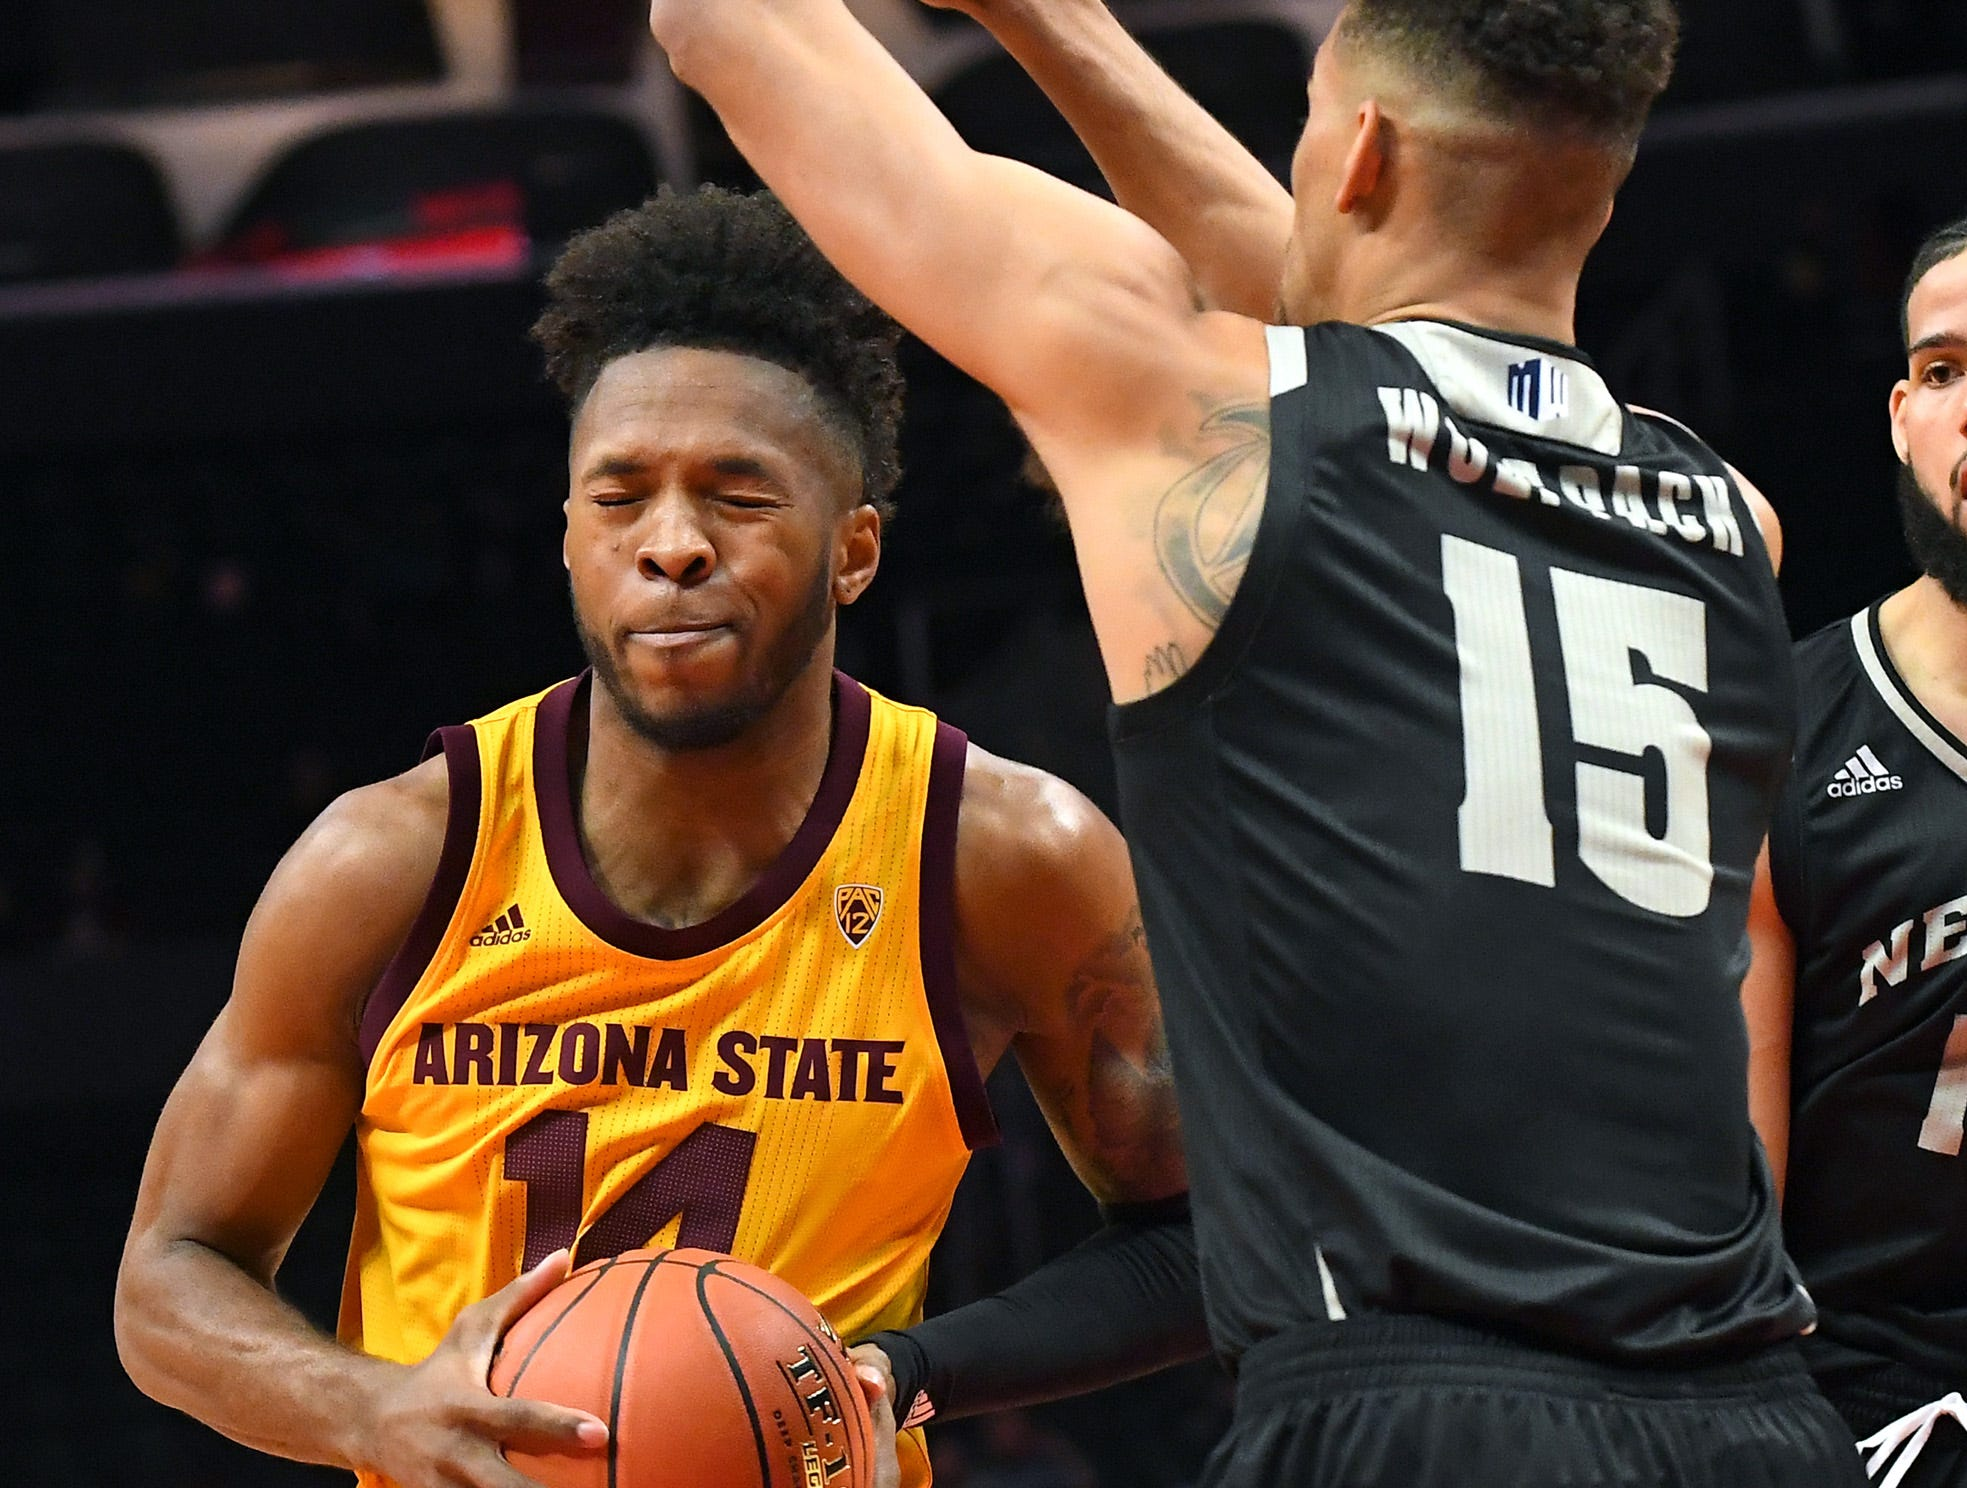 Dec 7, 2018; Los Angeles, CA, USA;  Arizona State Sun Devils forward Kimani Lawrence (14) is fouled by Nevada Wolf Pack forward Trey Porter (15) as he goes for a basket in the first half of the game at Staples Center. Mandatory Credit: Jayne Kamin-Oncea-USA TODAY Sports